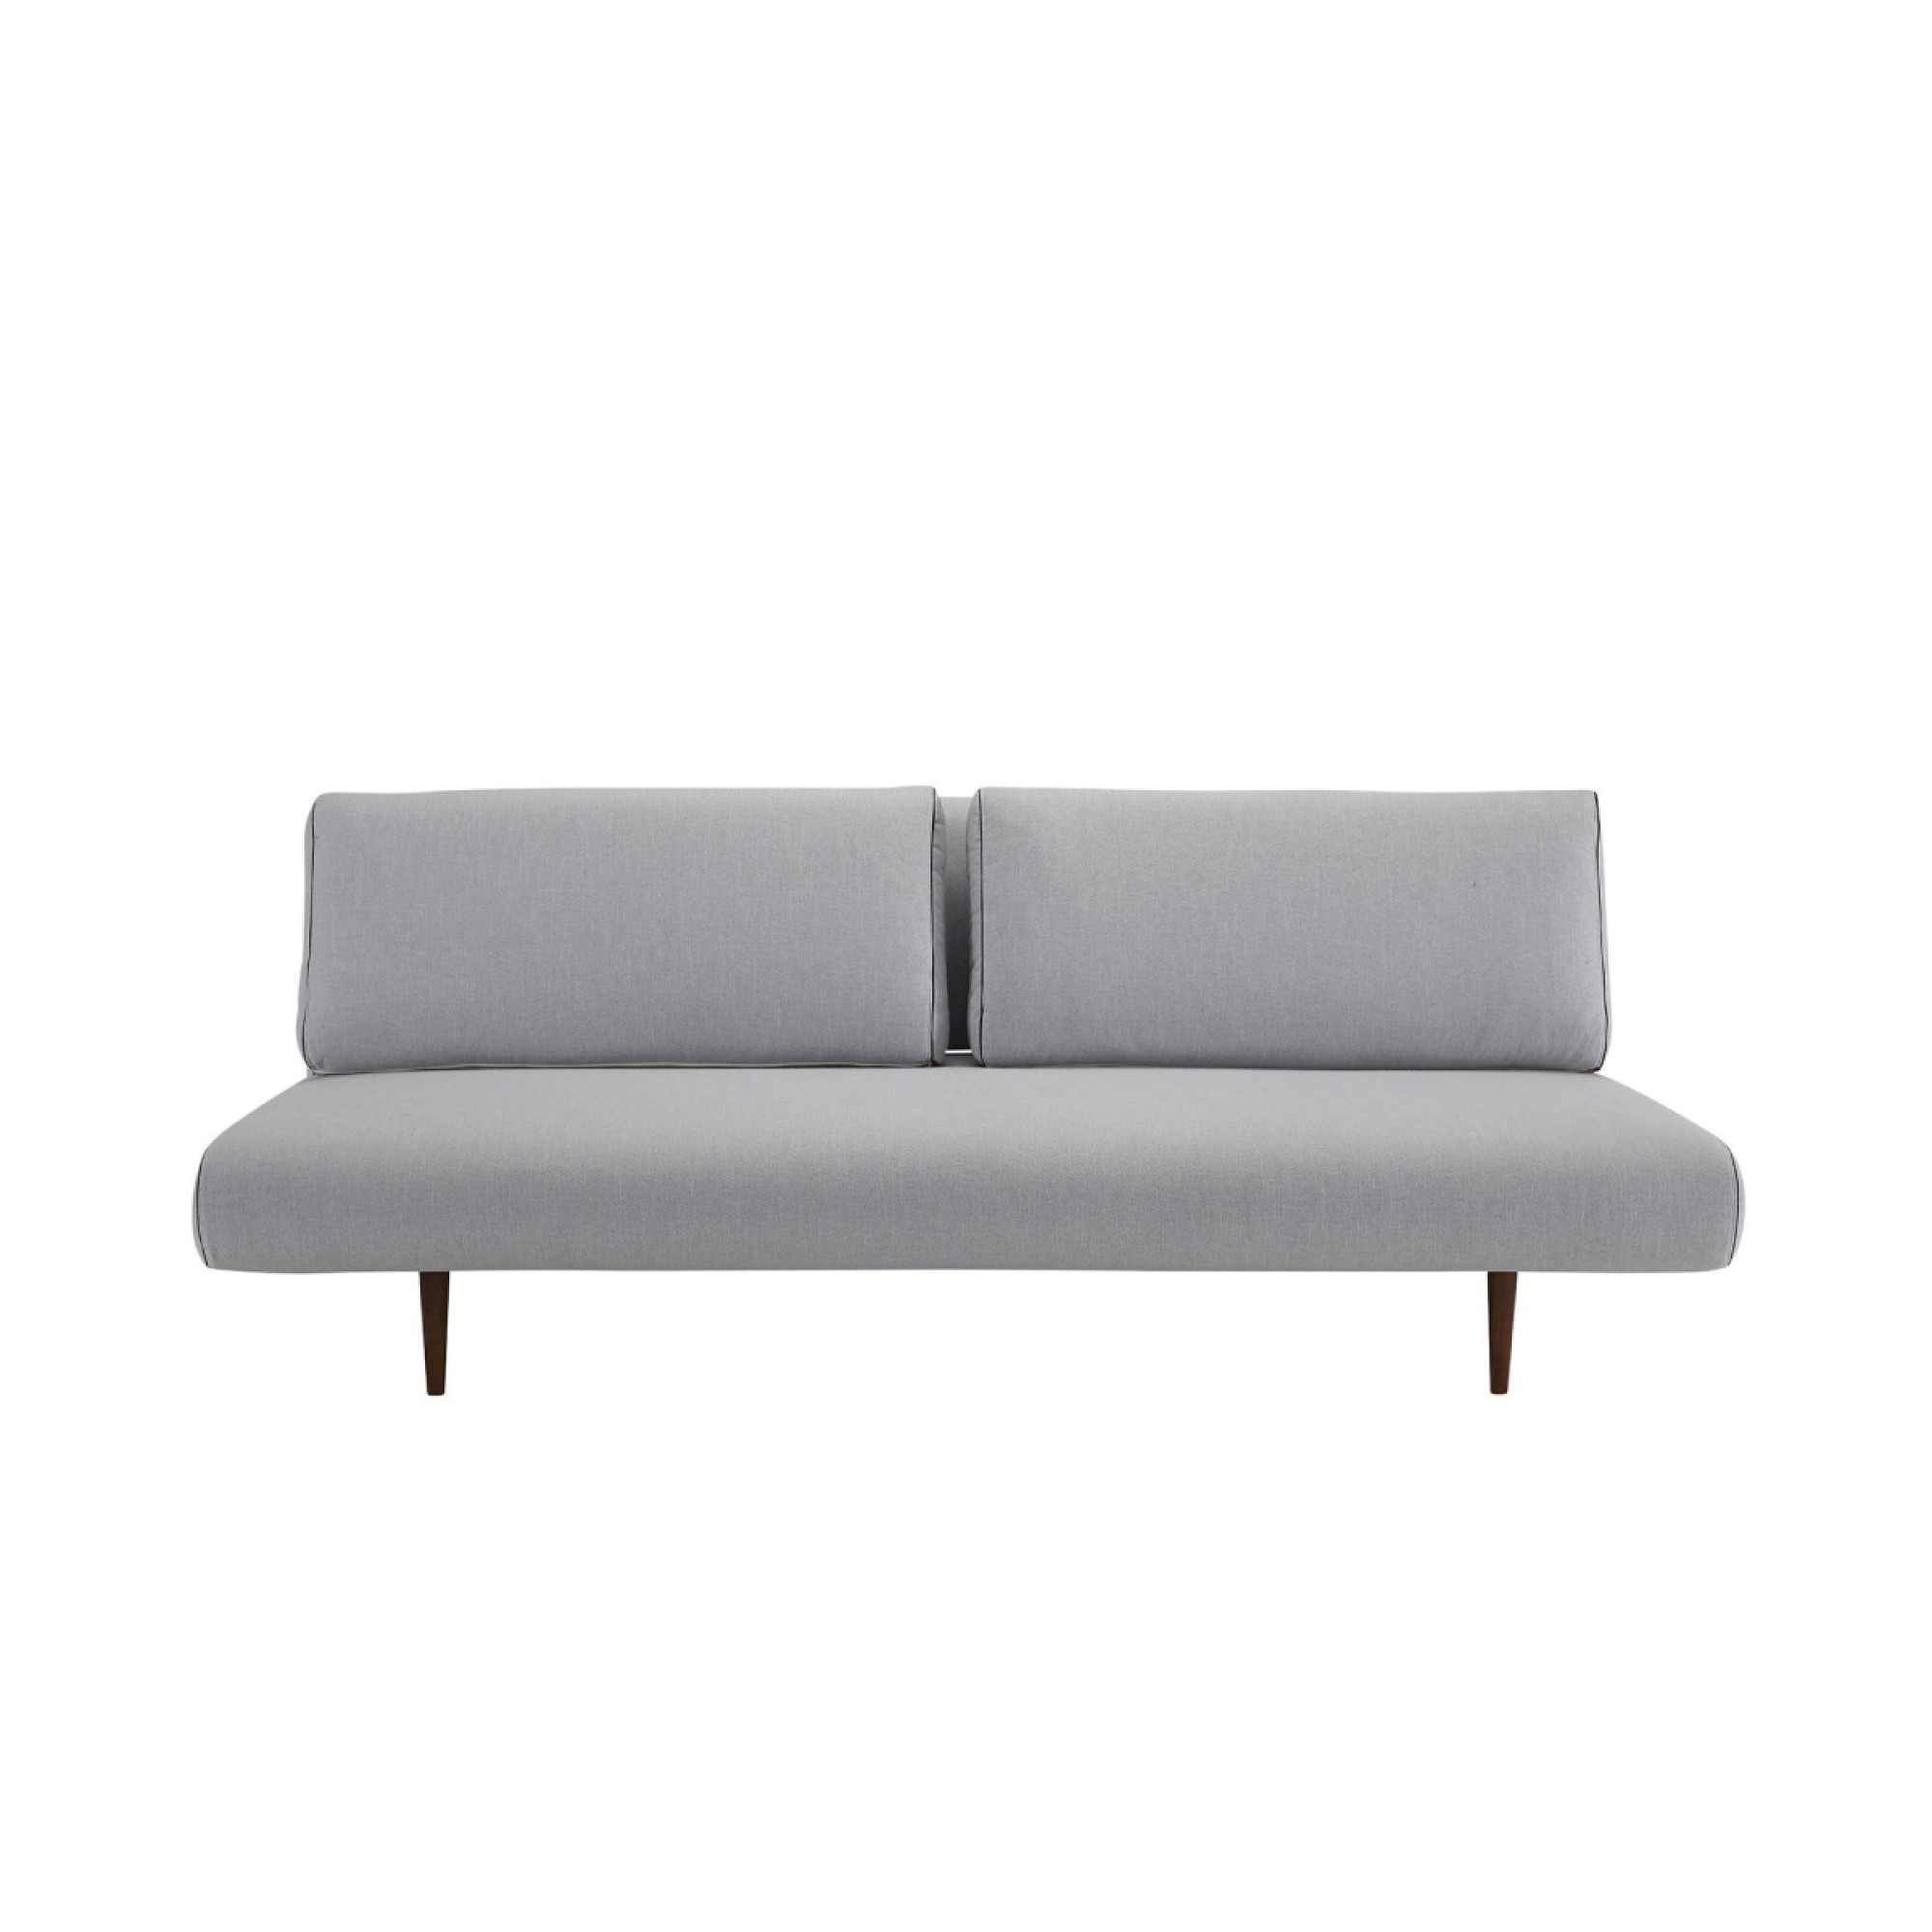 Per Weiss Sofa Bed Uk Outline Sofa By Muuto Luxury Interior Design Online Shop